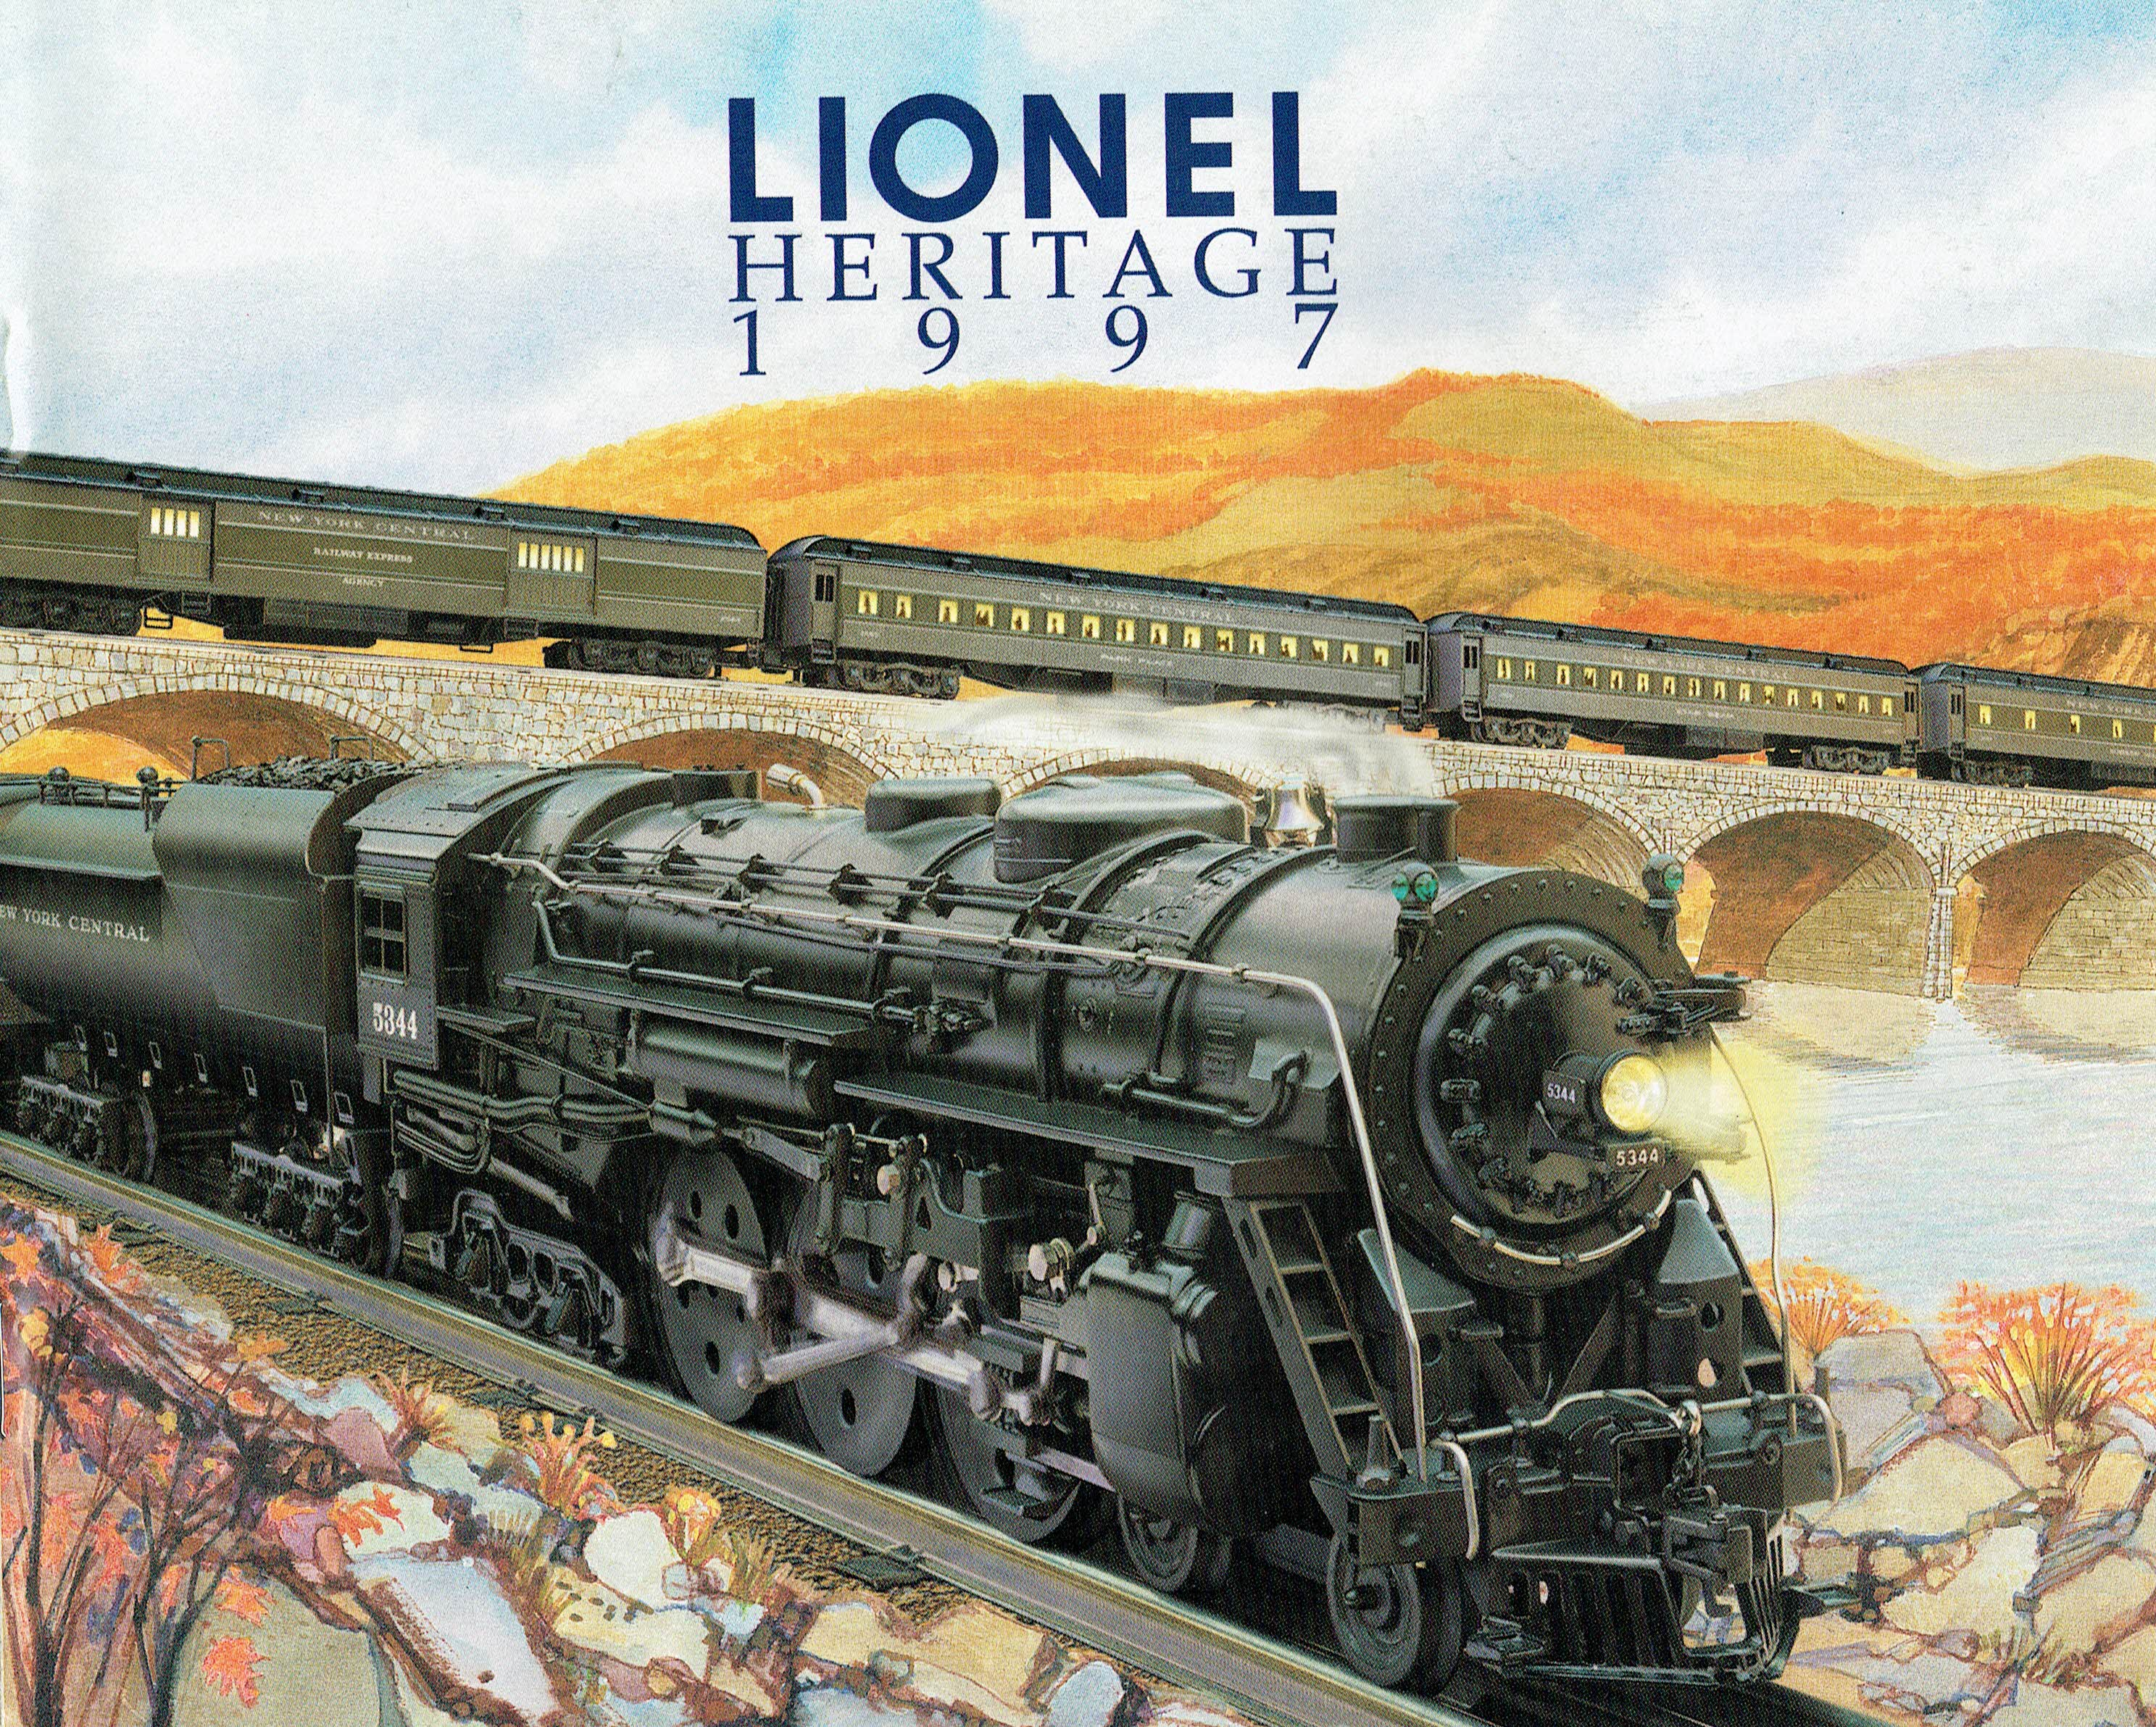 Lionel 1997 Heritage (NYC steam on cover) Catalog image